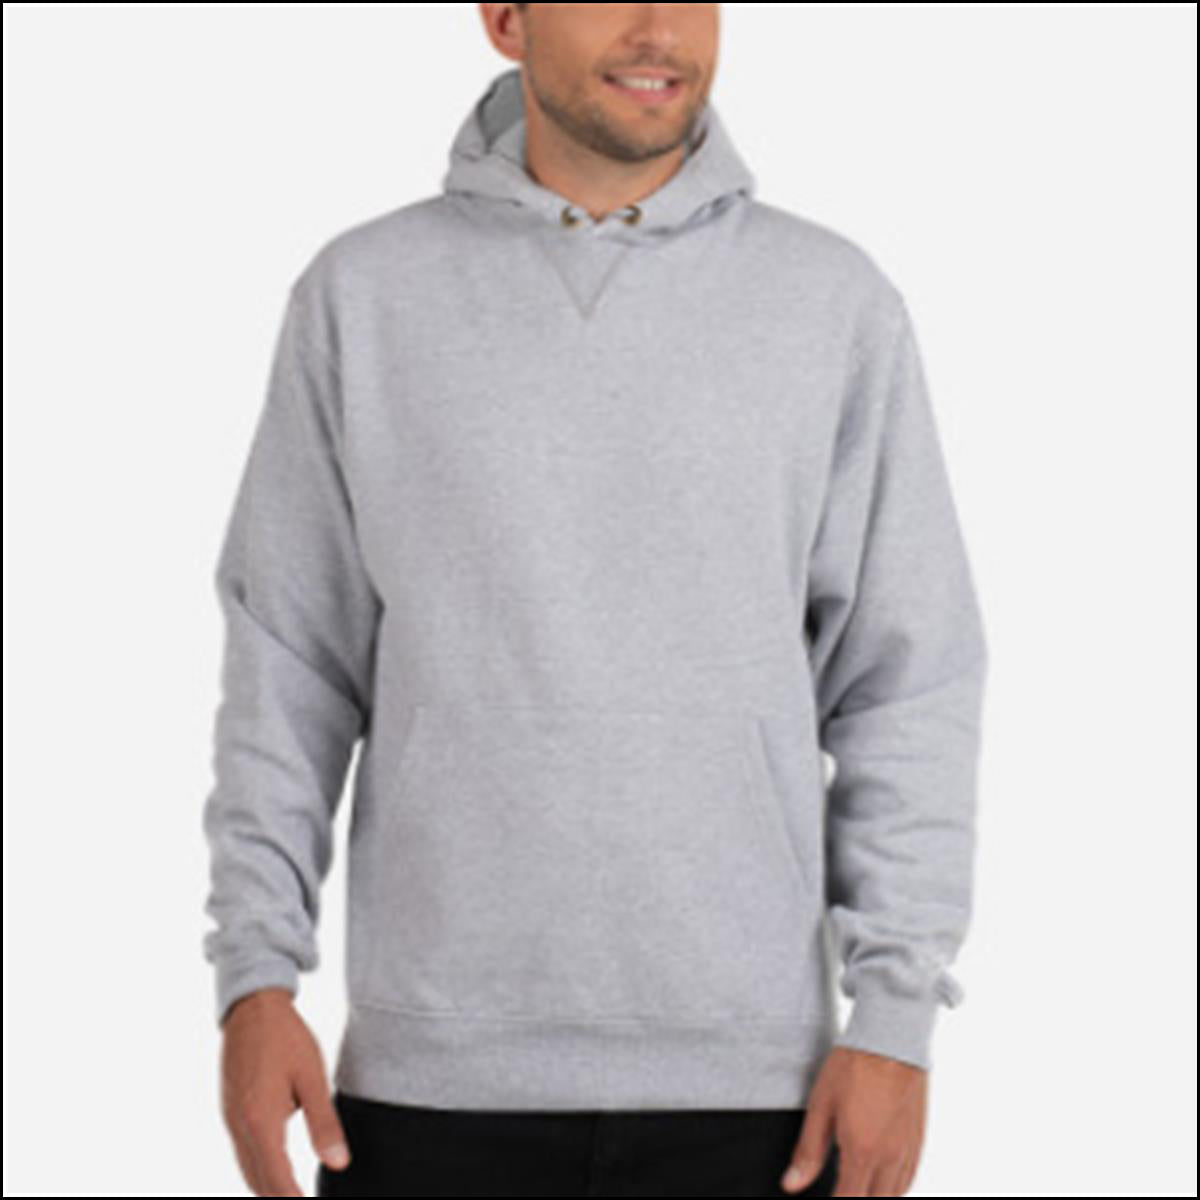 Cotton Shop Cat S171 Max Champion Purfect Hoodie 0wvN8nymPO